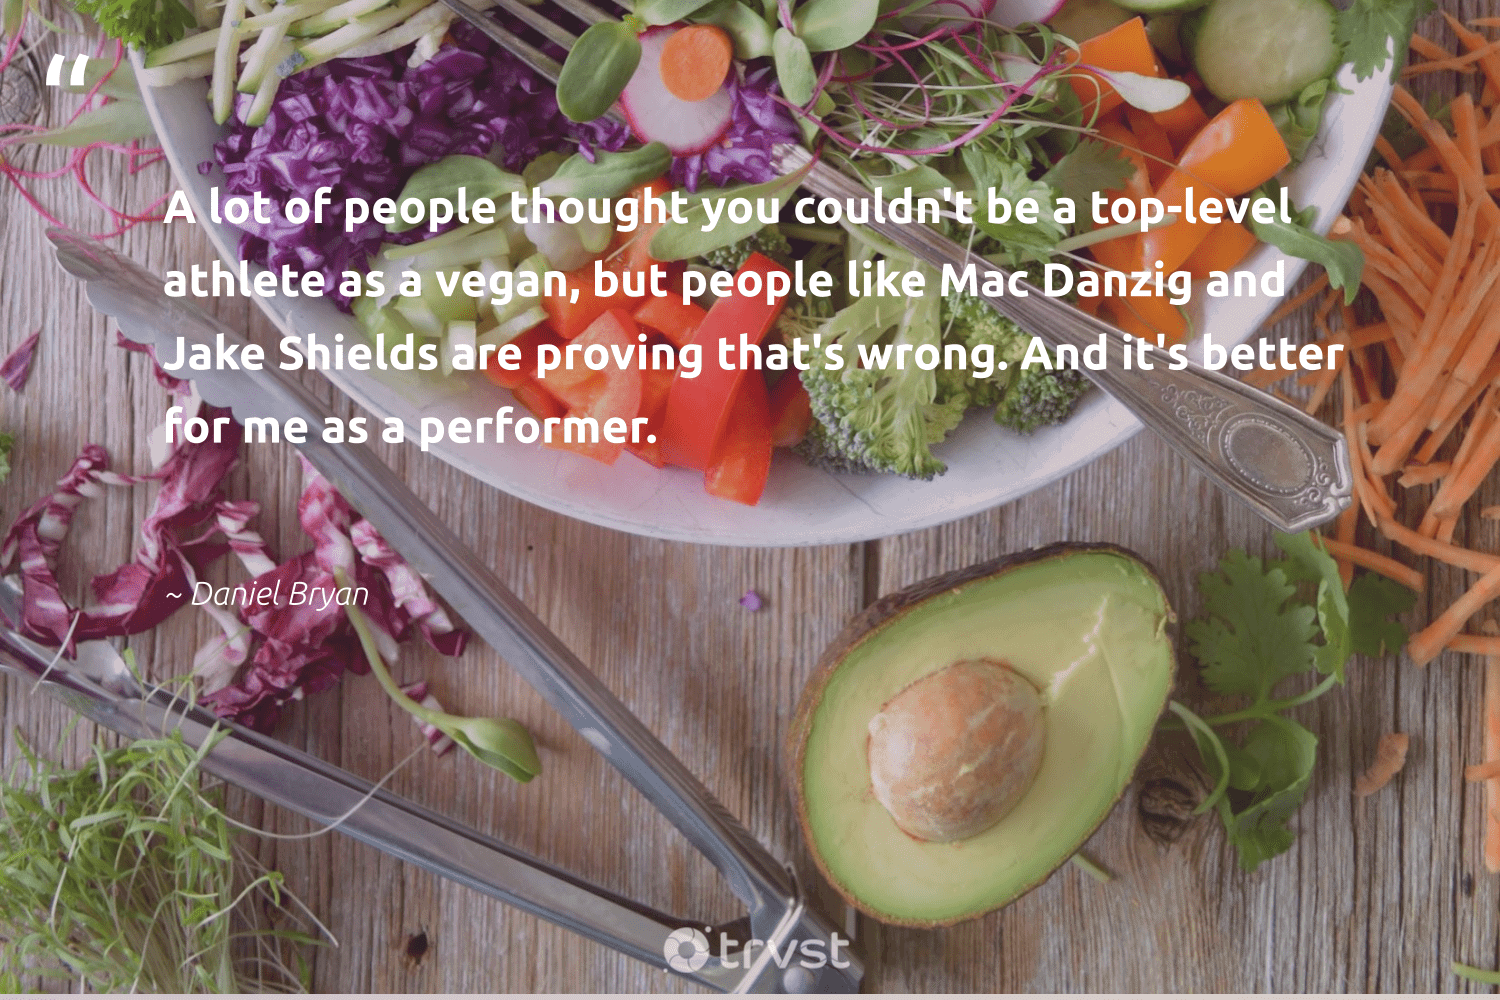 """""""A lot of people thought you couldn't be a top-level athlete as a vegan, but people like Mac Danzig and Jake Shields are proving that's wrong. And it's better for me as a performer.""""  - Daniel Bryan #trvst #quotes #vegan #plantbased #bethechange #gogreen #impact #veggie #green #sustainable #ecoconscious #vegetarian"""